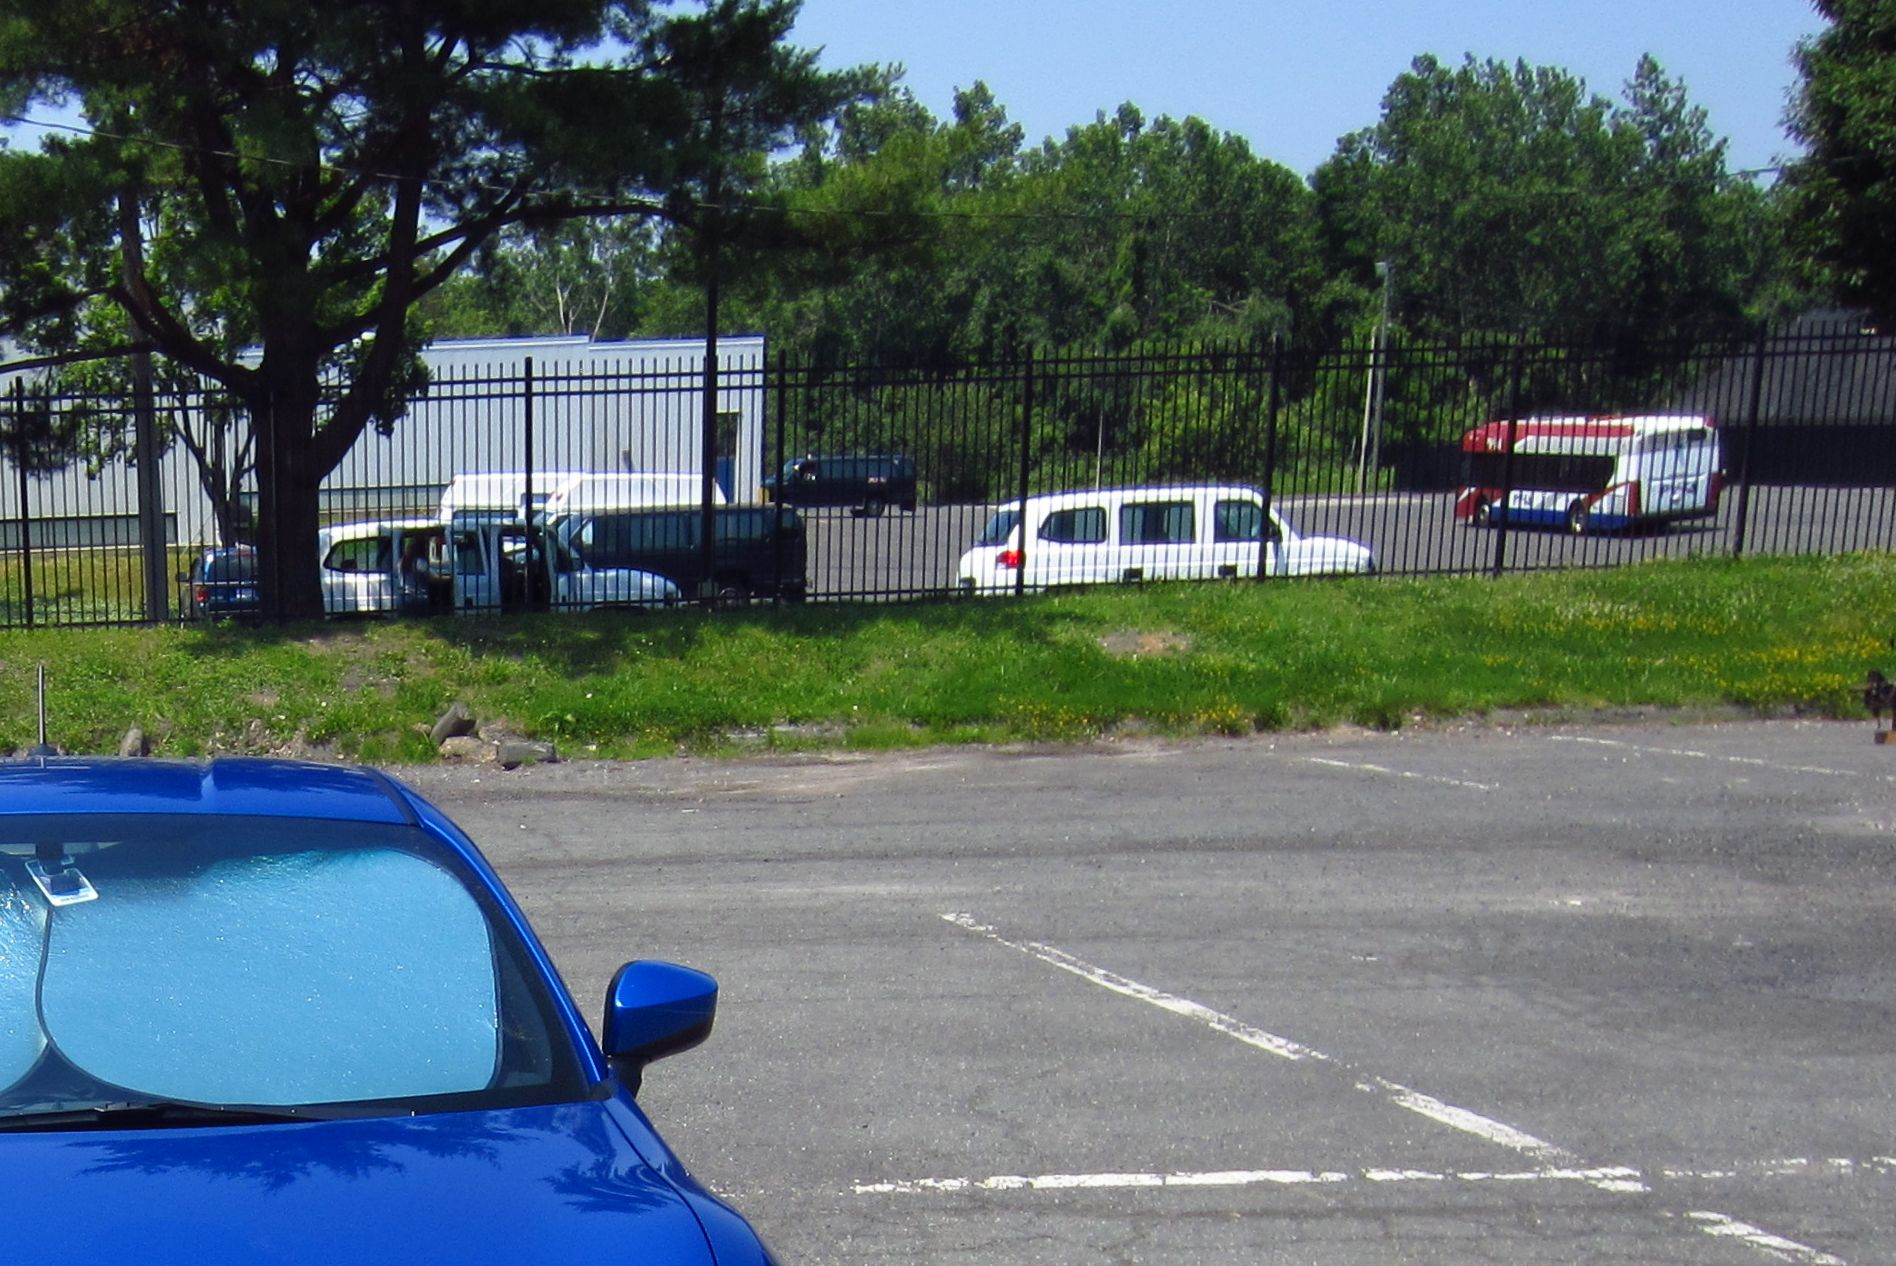 ... . That's a bus depot and enterprise rental agency behind the fence